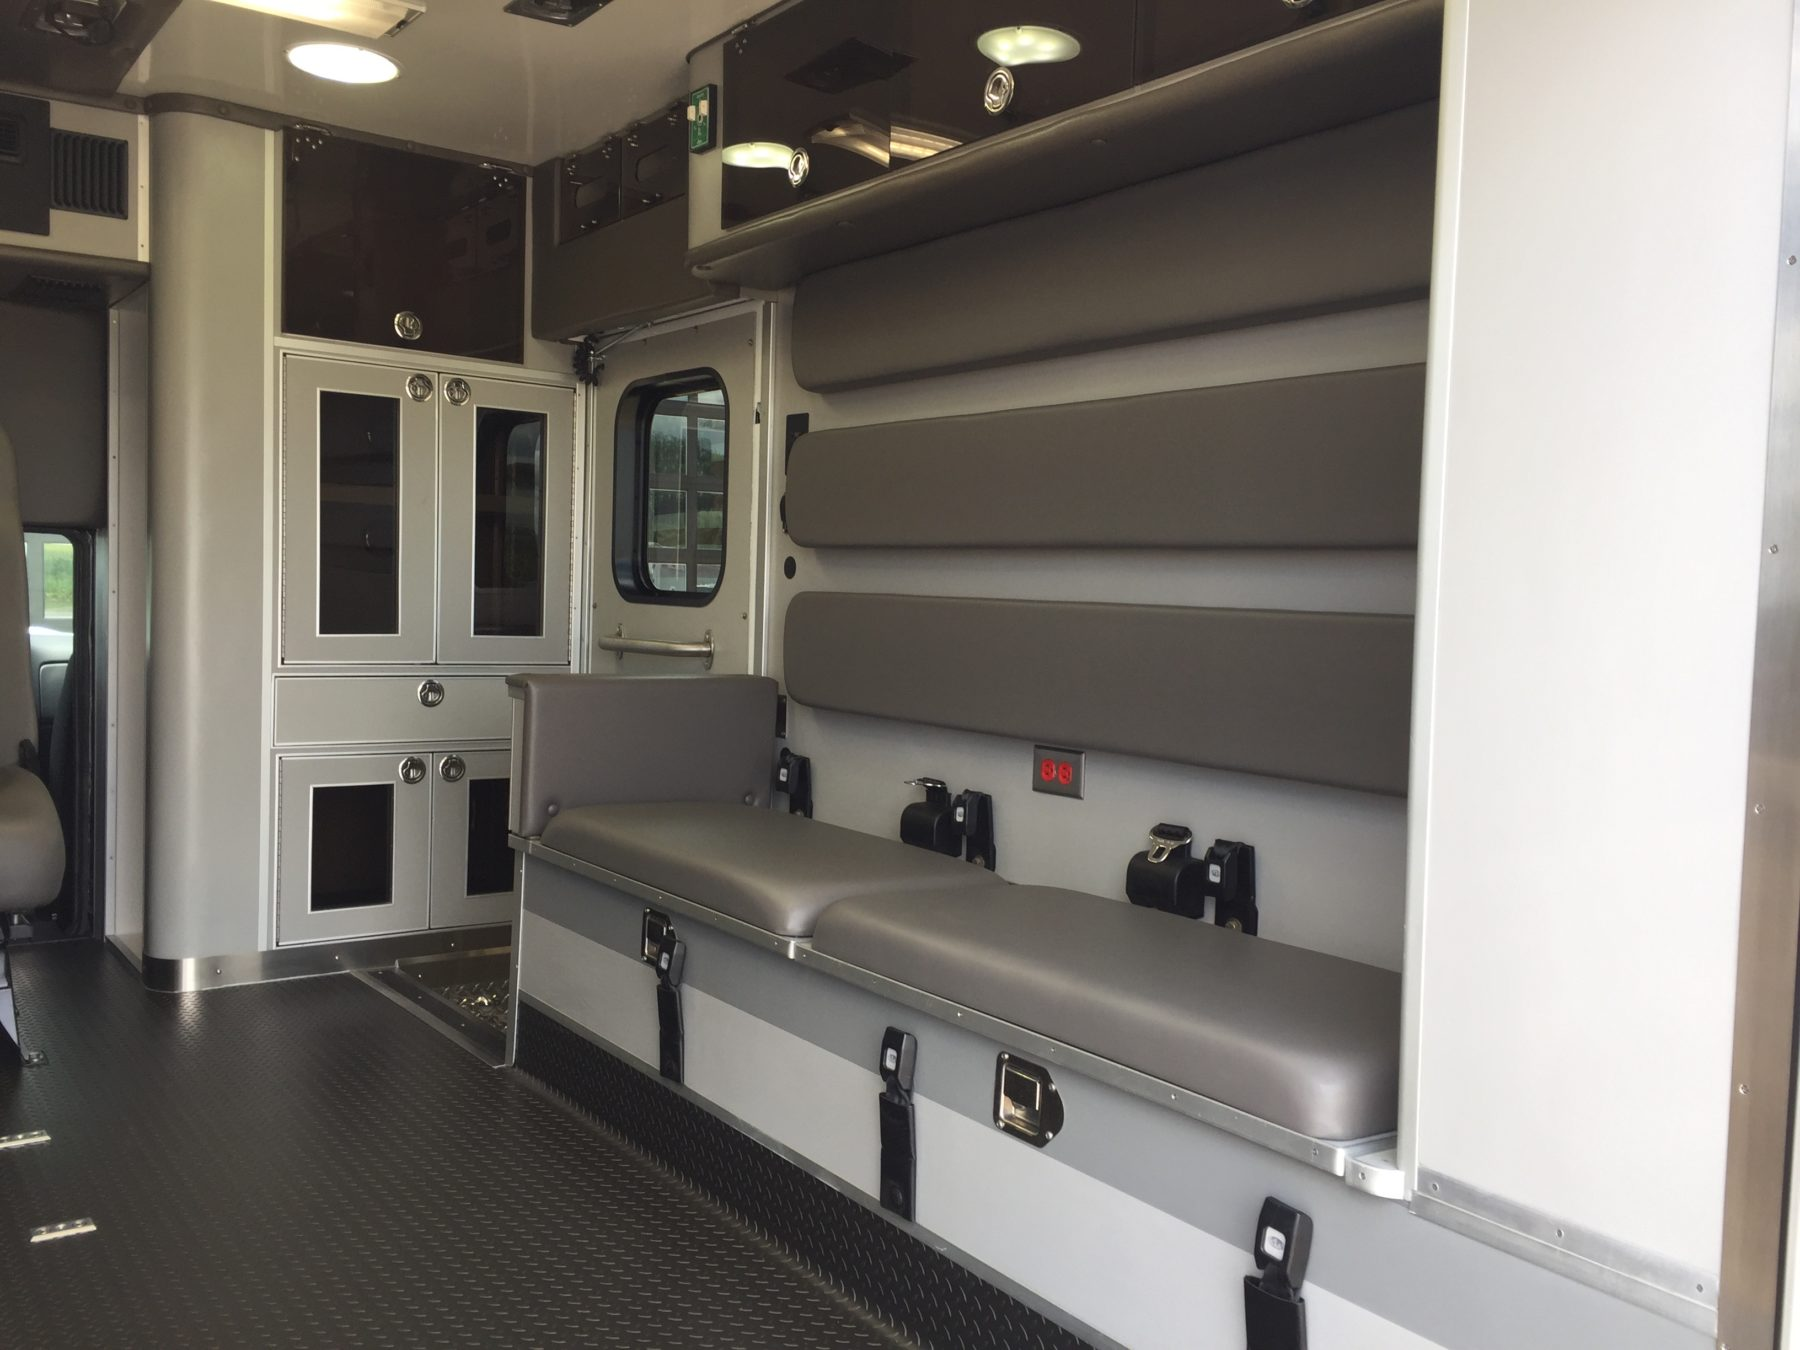 2018 Chevrolet K3500 4x4 Type 1 Ambulance For Sale – Picture 13